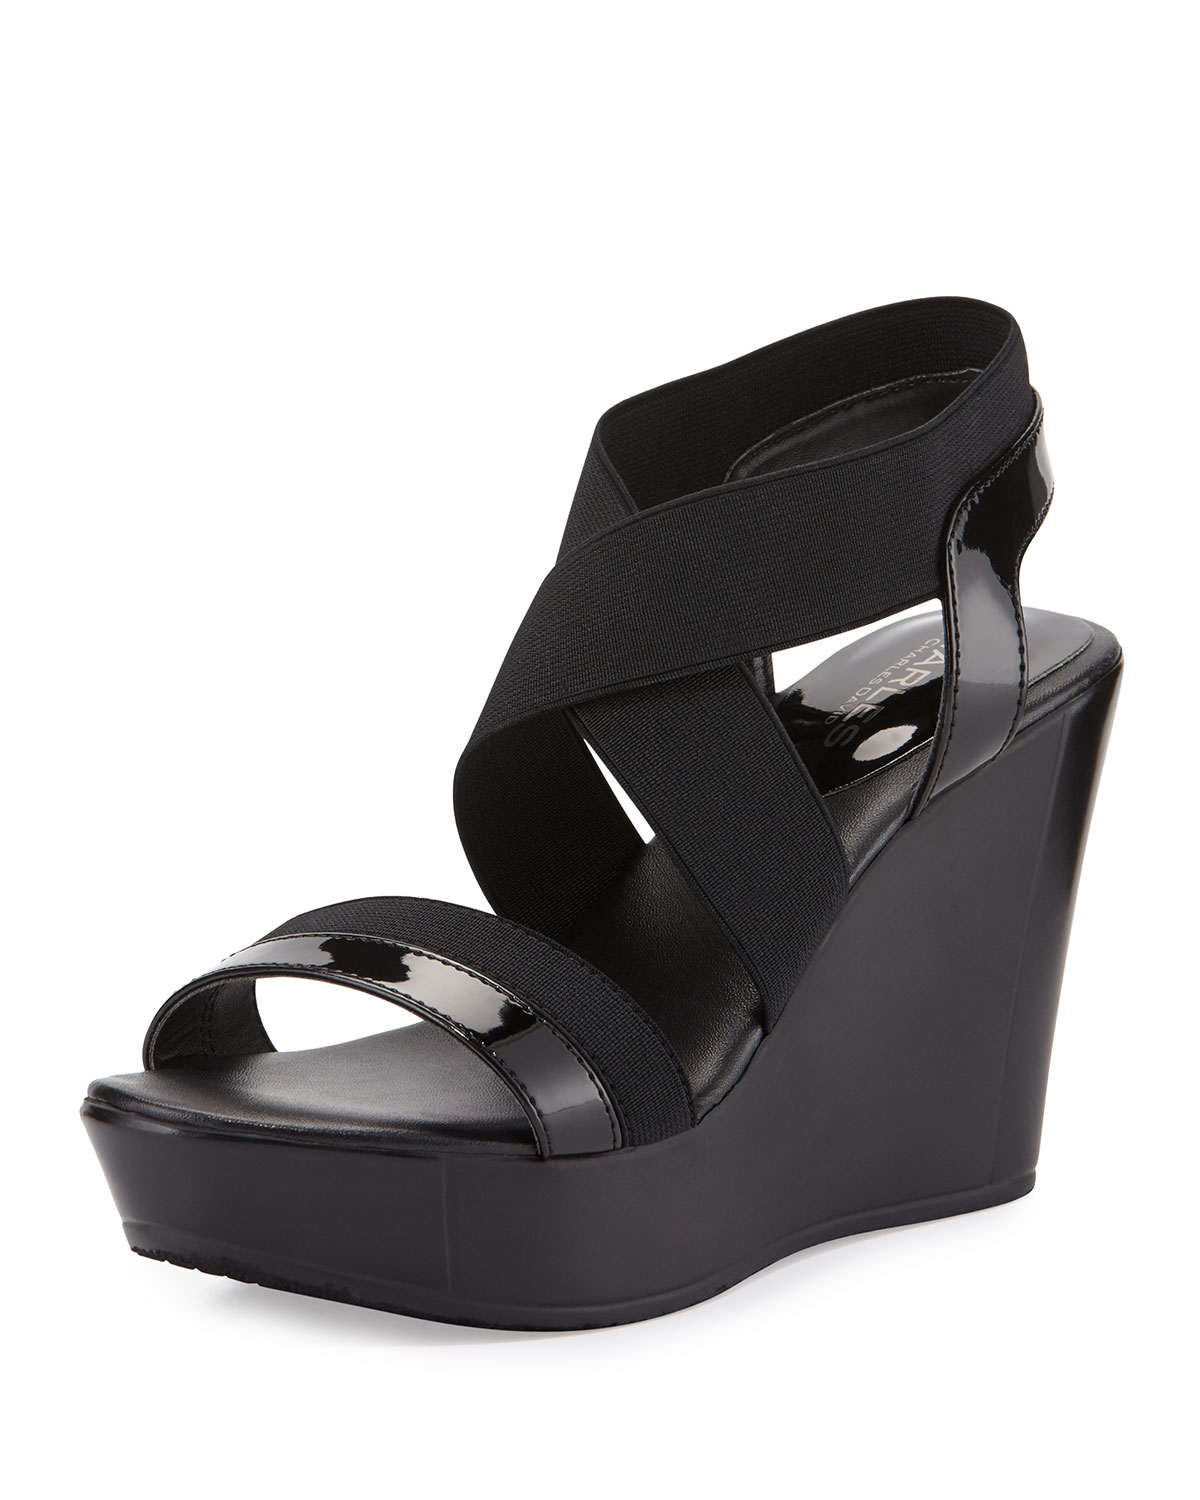 d63b36e2f7d Lyst - Charles David Feature Elastic Wedge Sandal in Black